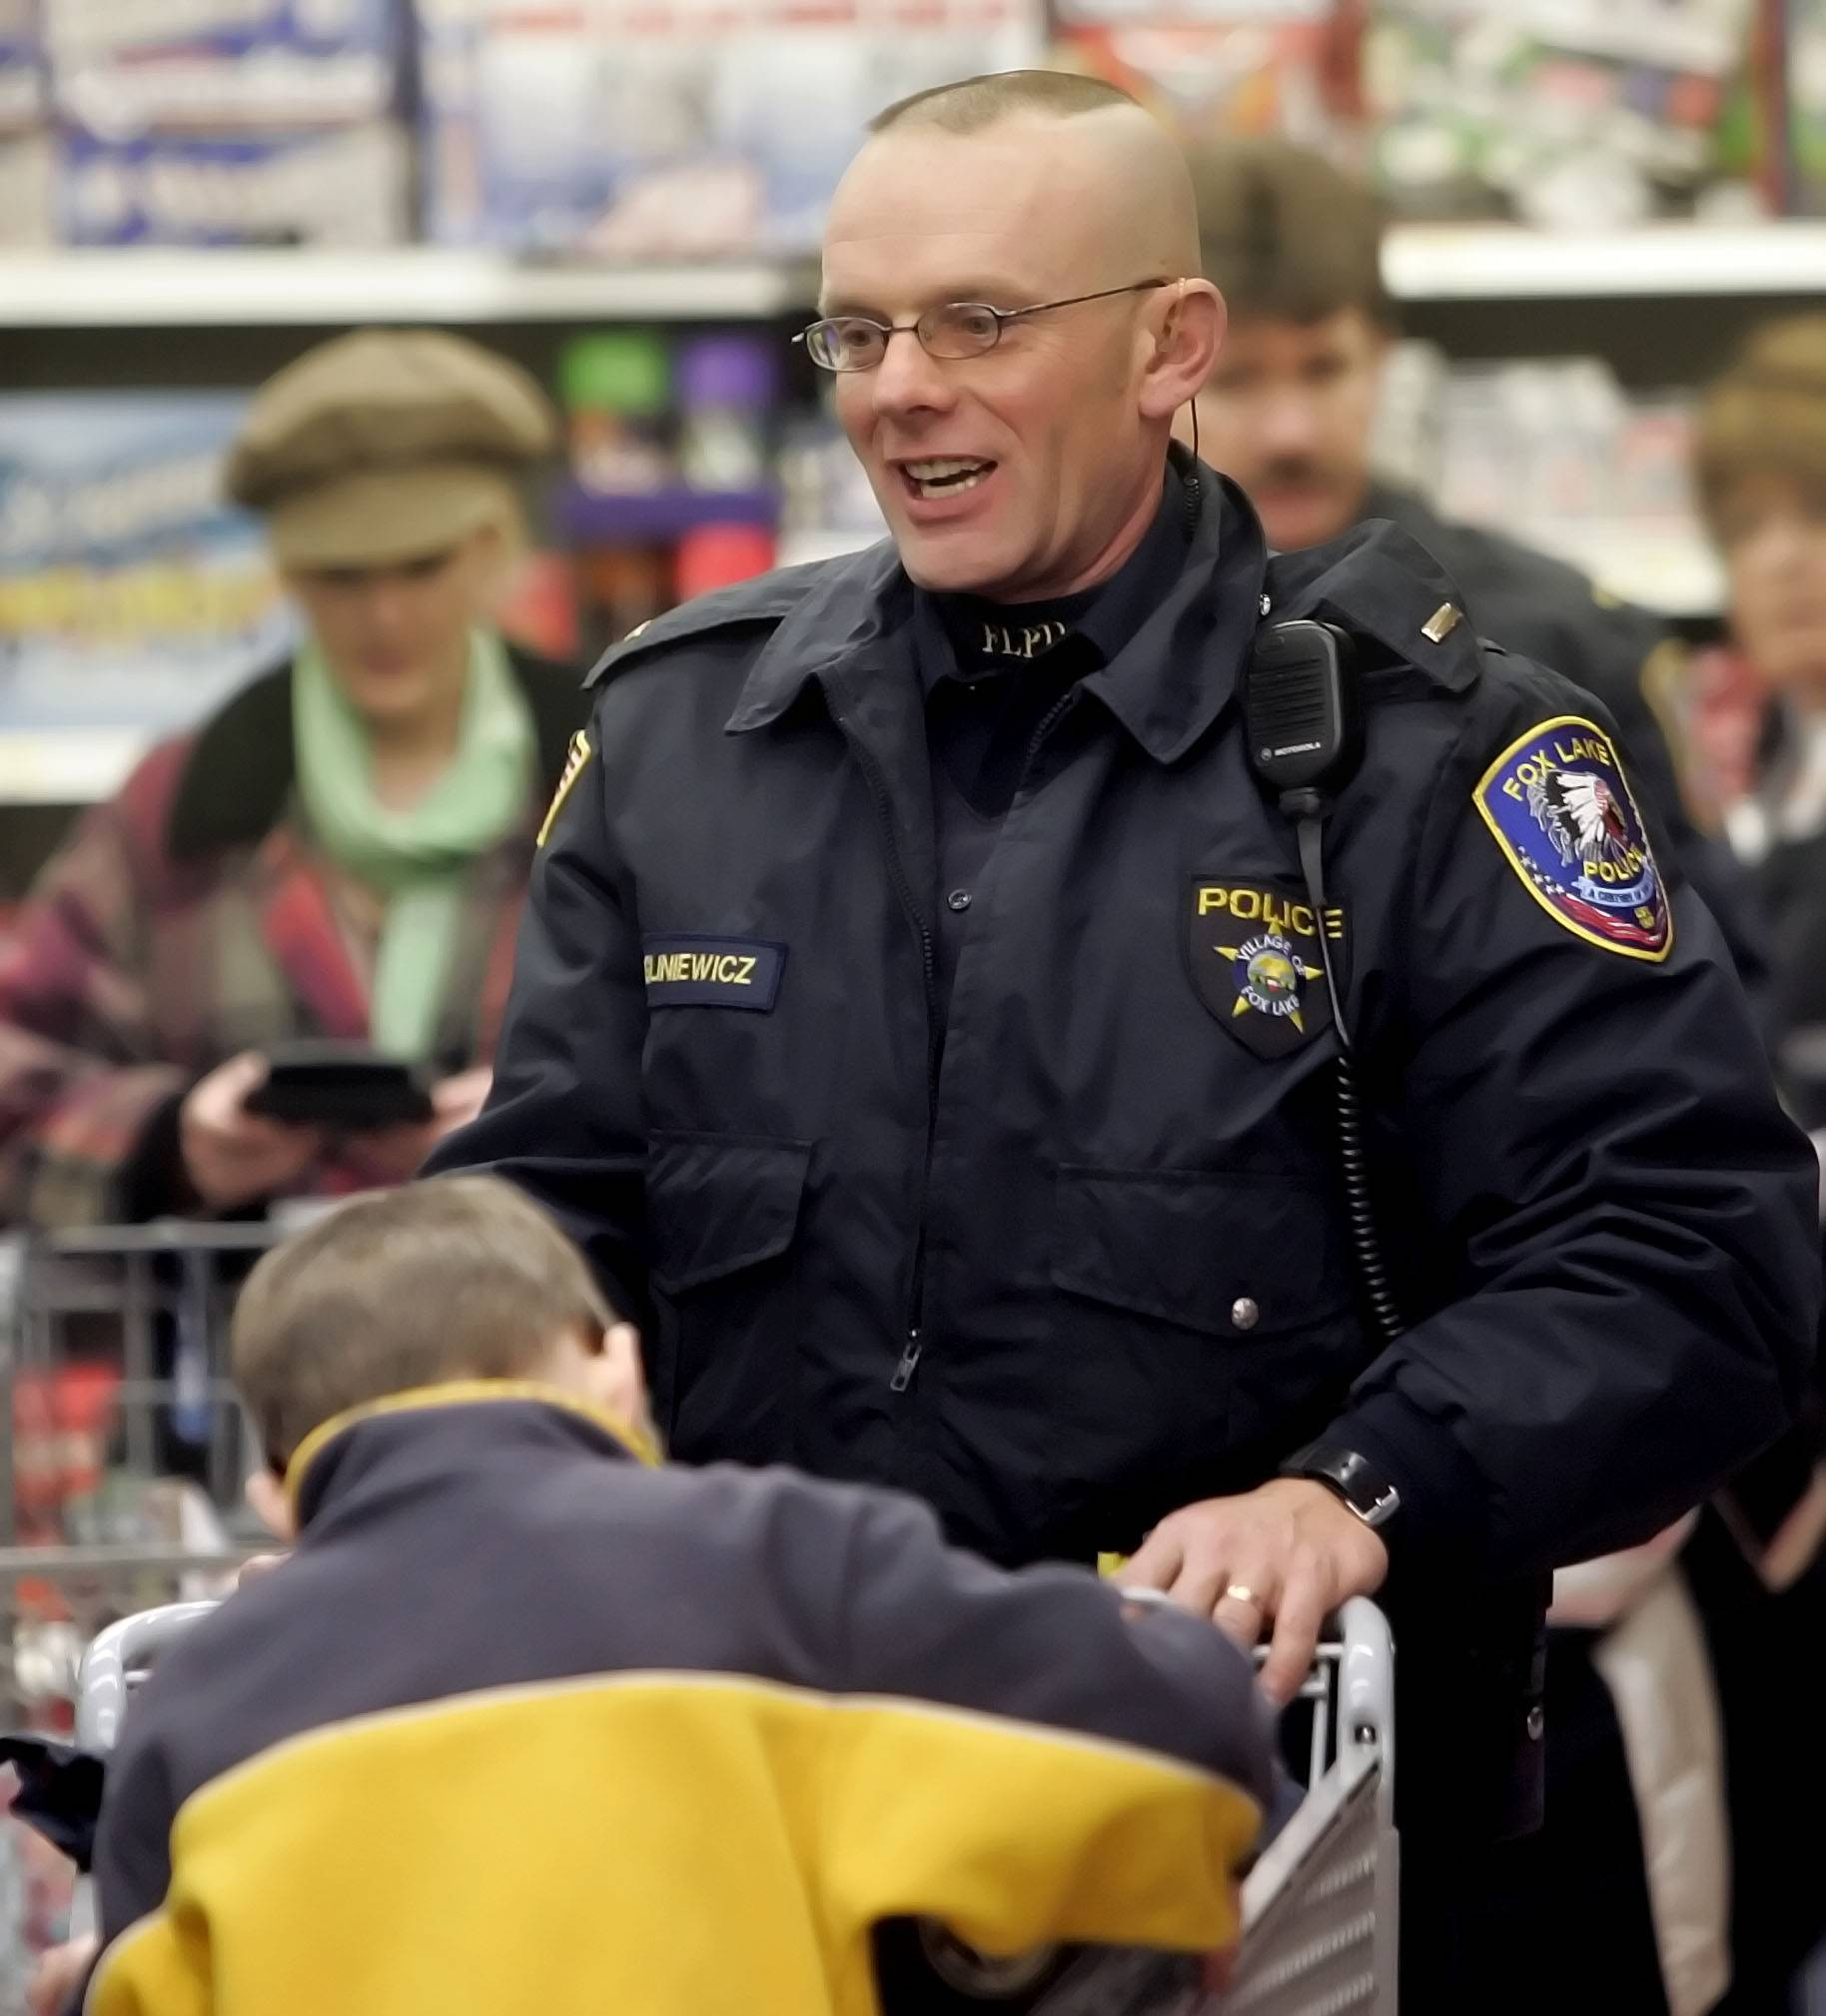 Fox Lake police Lt. Charles Joseph Gliniewicz played his part in helping the community, colleagues said, here participating in Shop with a Cop.